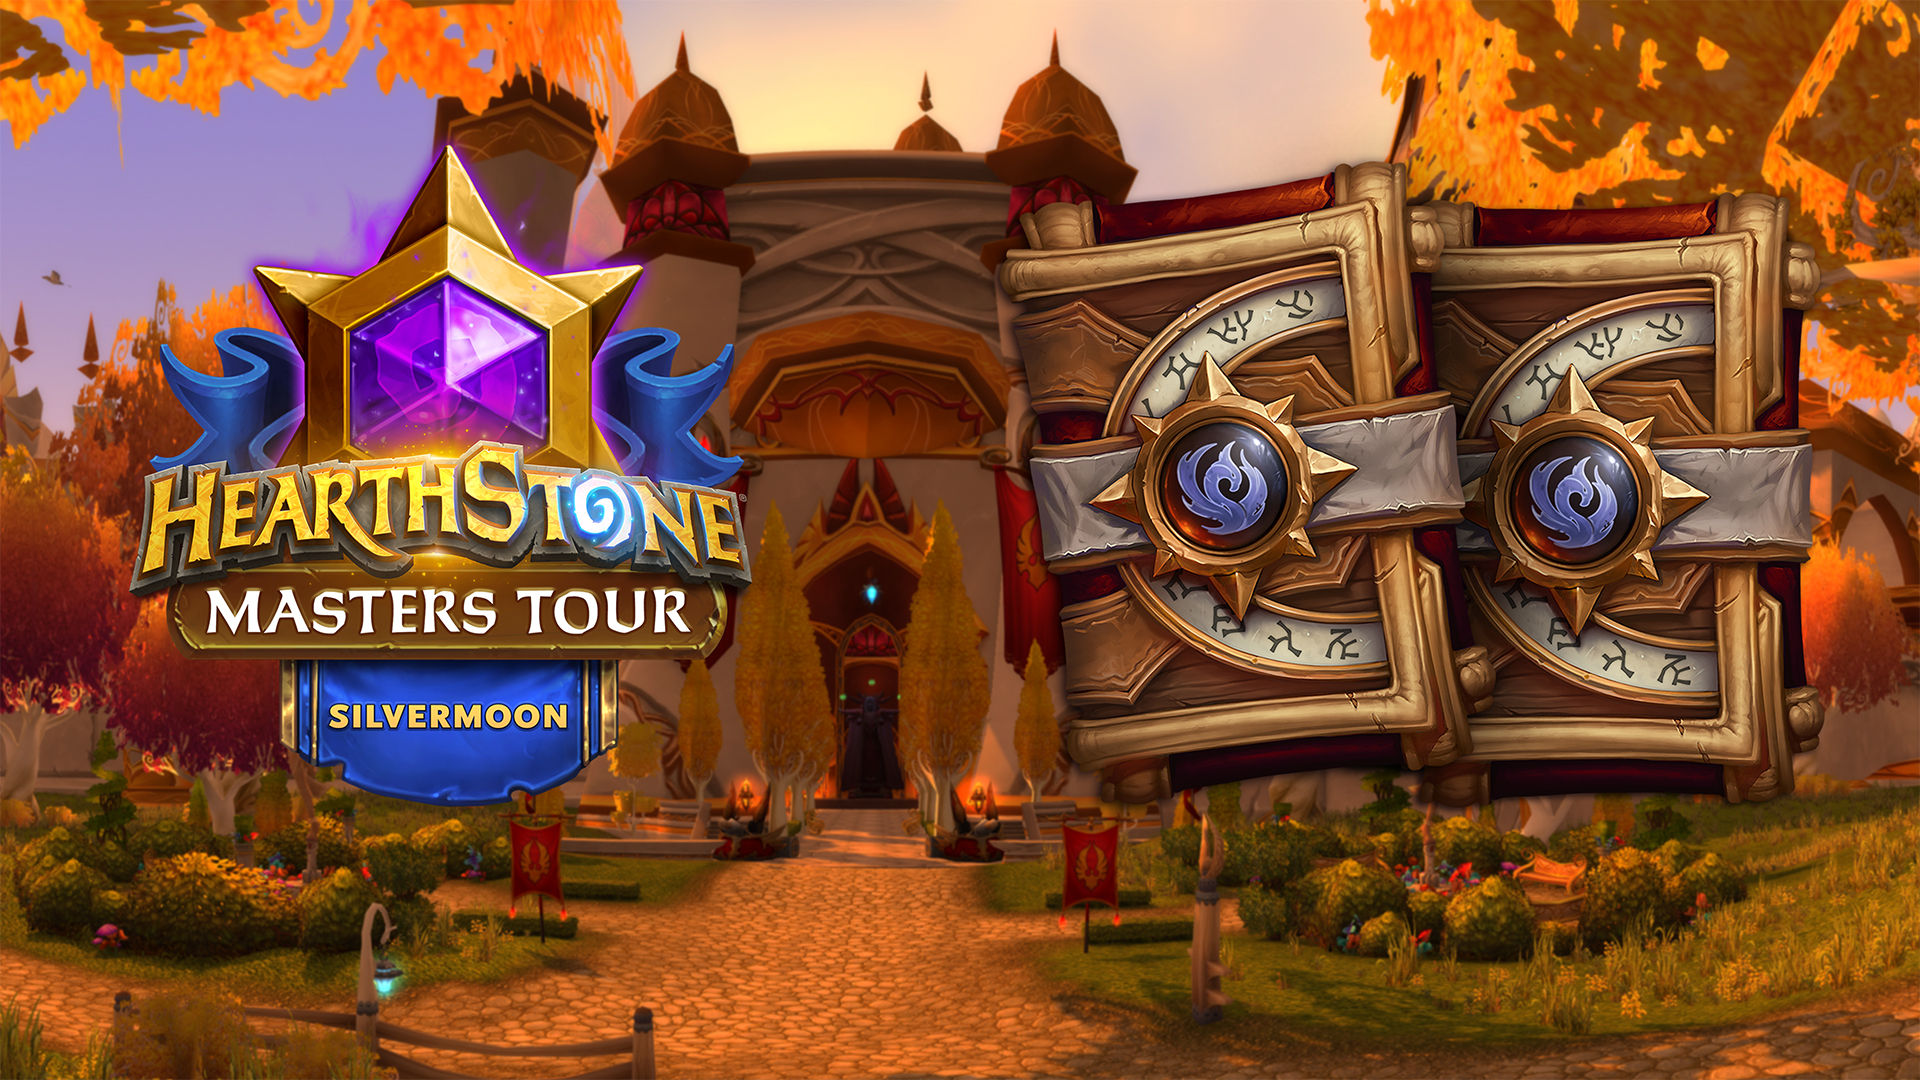 Hearthstone Masters Tour Silvermoon Viewer's Guide